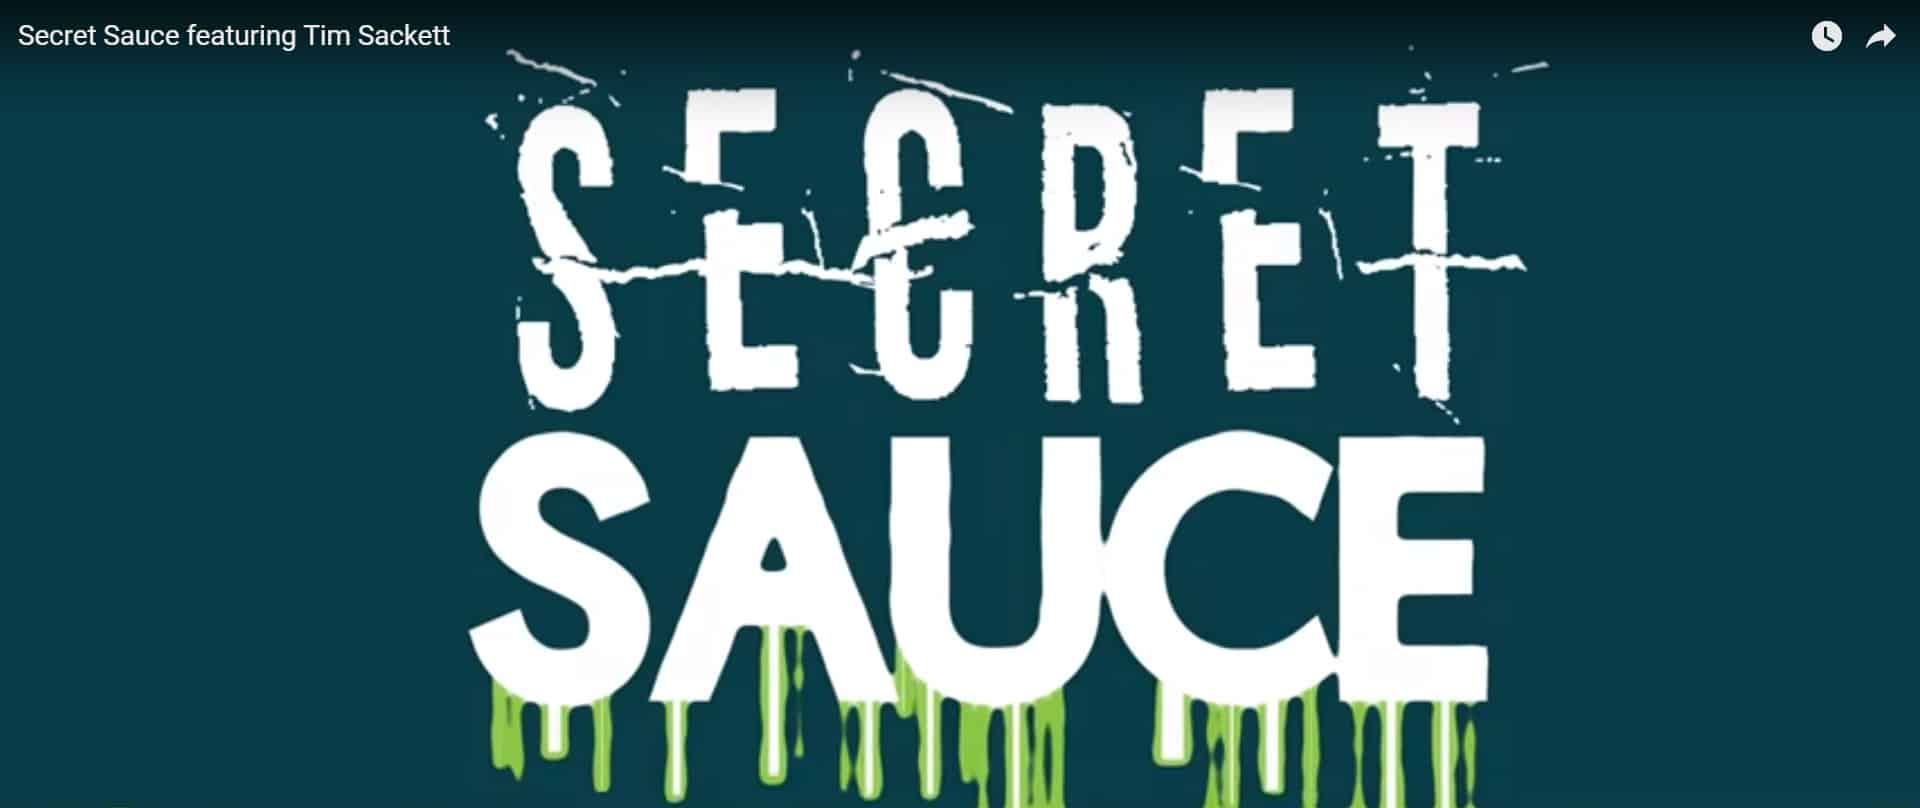 FoT Secret Sauce Blog Header 2